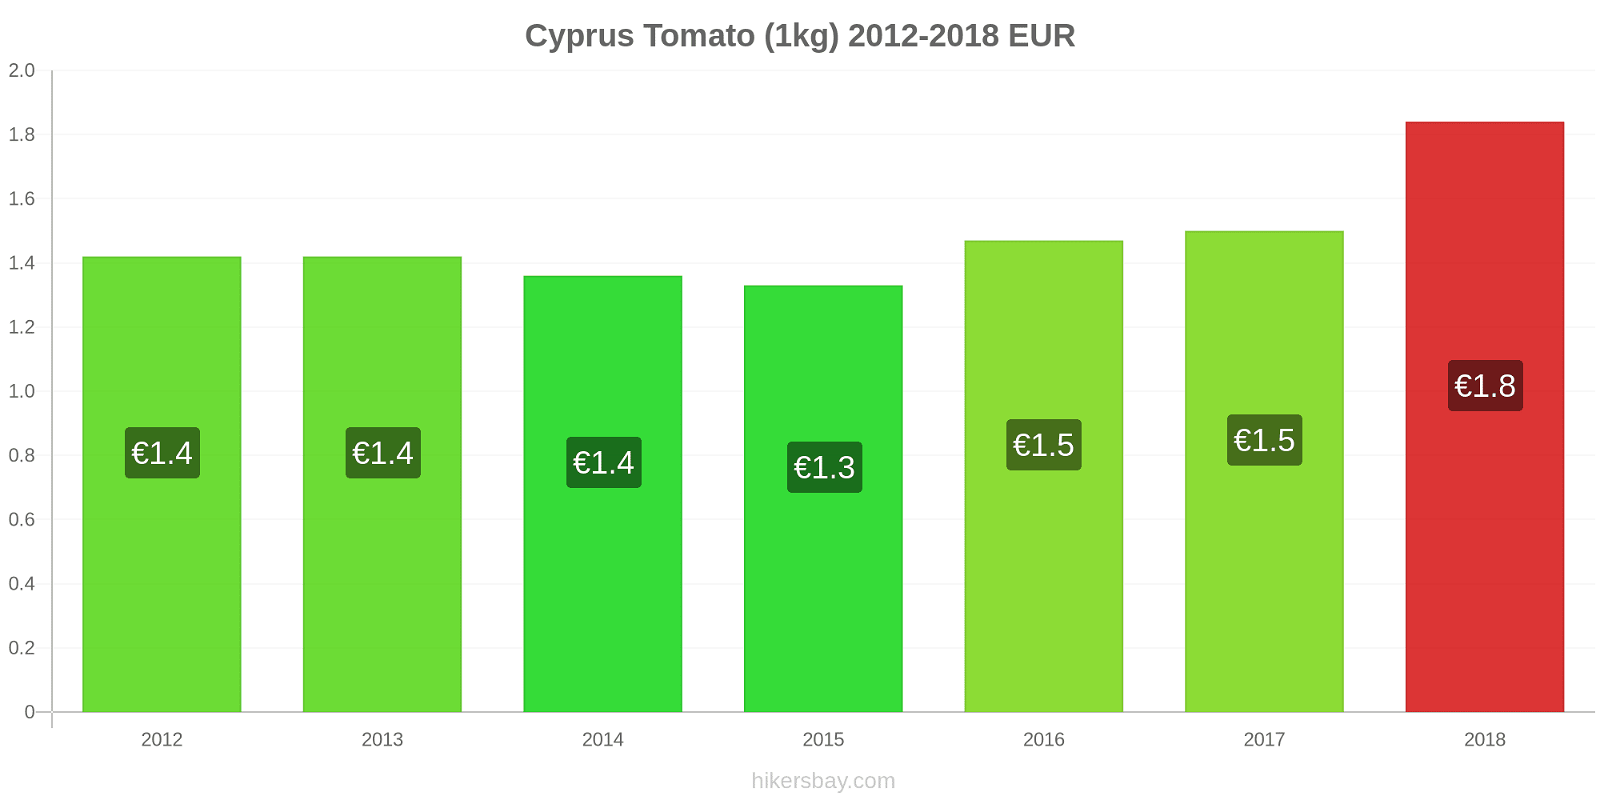 Cyprus price changes Tomato (1kg) hikersbay.com